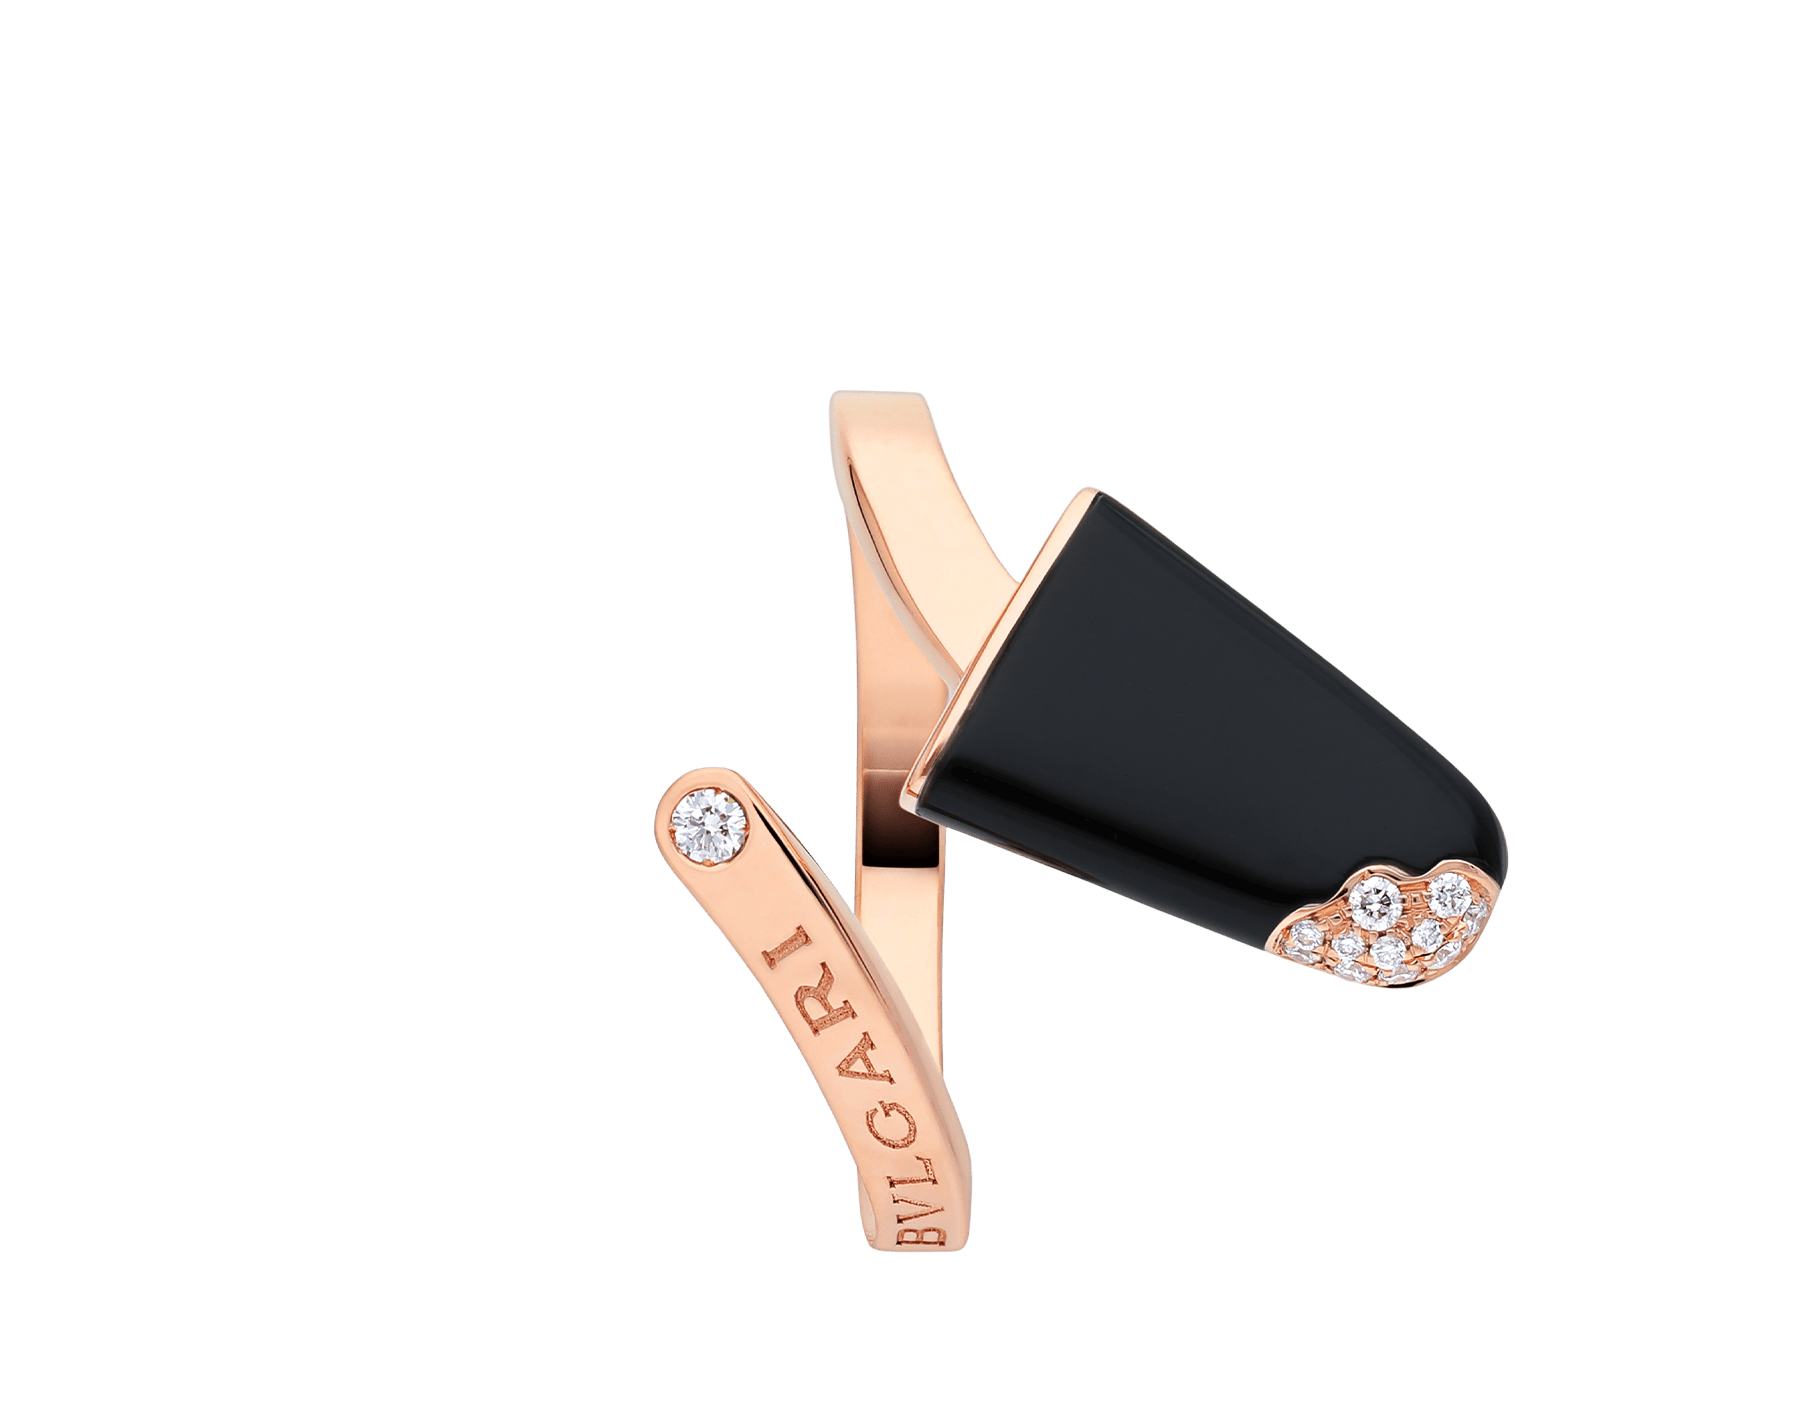 BVLGARI BVLGARI Gelati 18 kt rose gold ring set with onyx and pavé diamonds AN858499 image 3